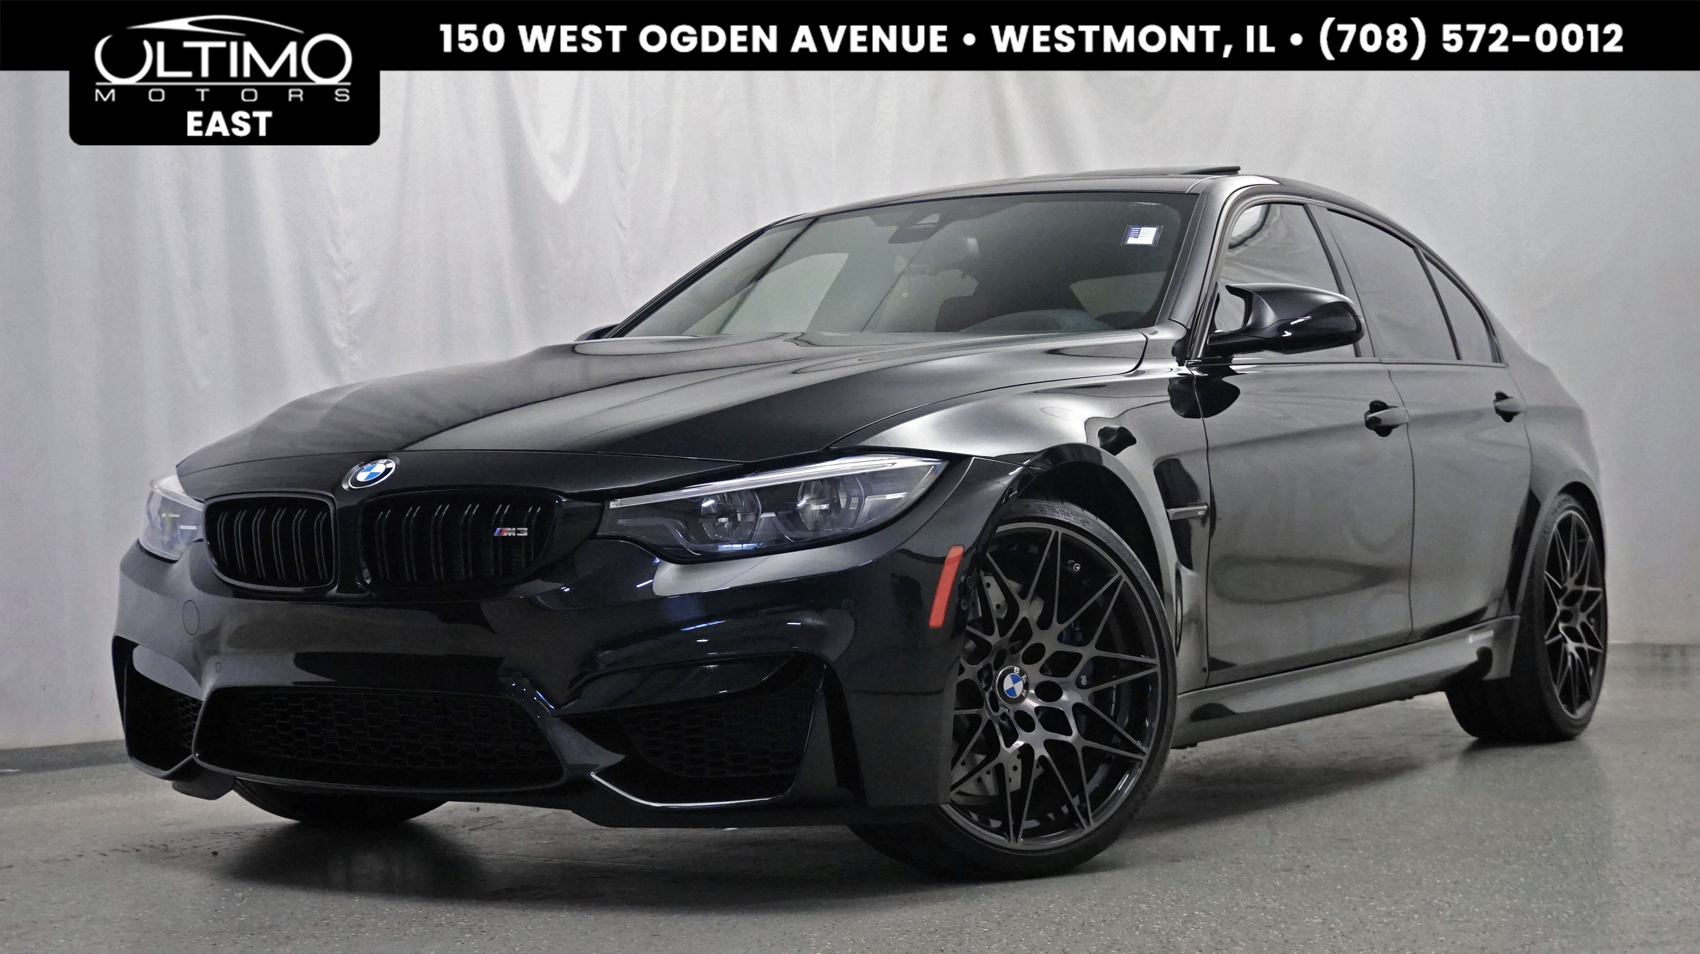 Pre-Owned 2018 BMW M3 Competition Package, Executive Package, Driver Assistance Package $83,595 MSRP